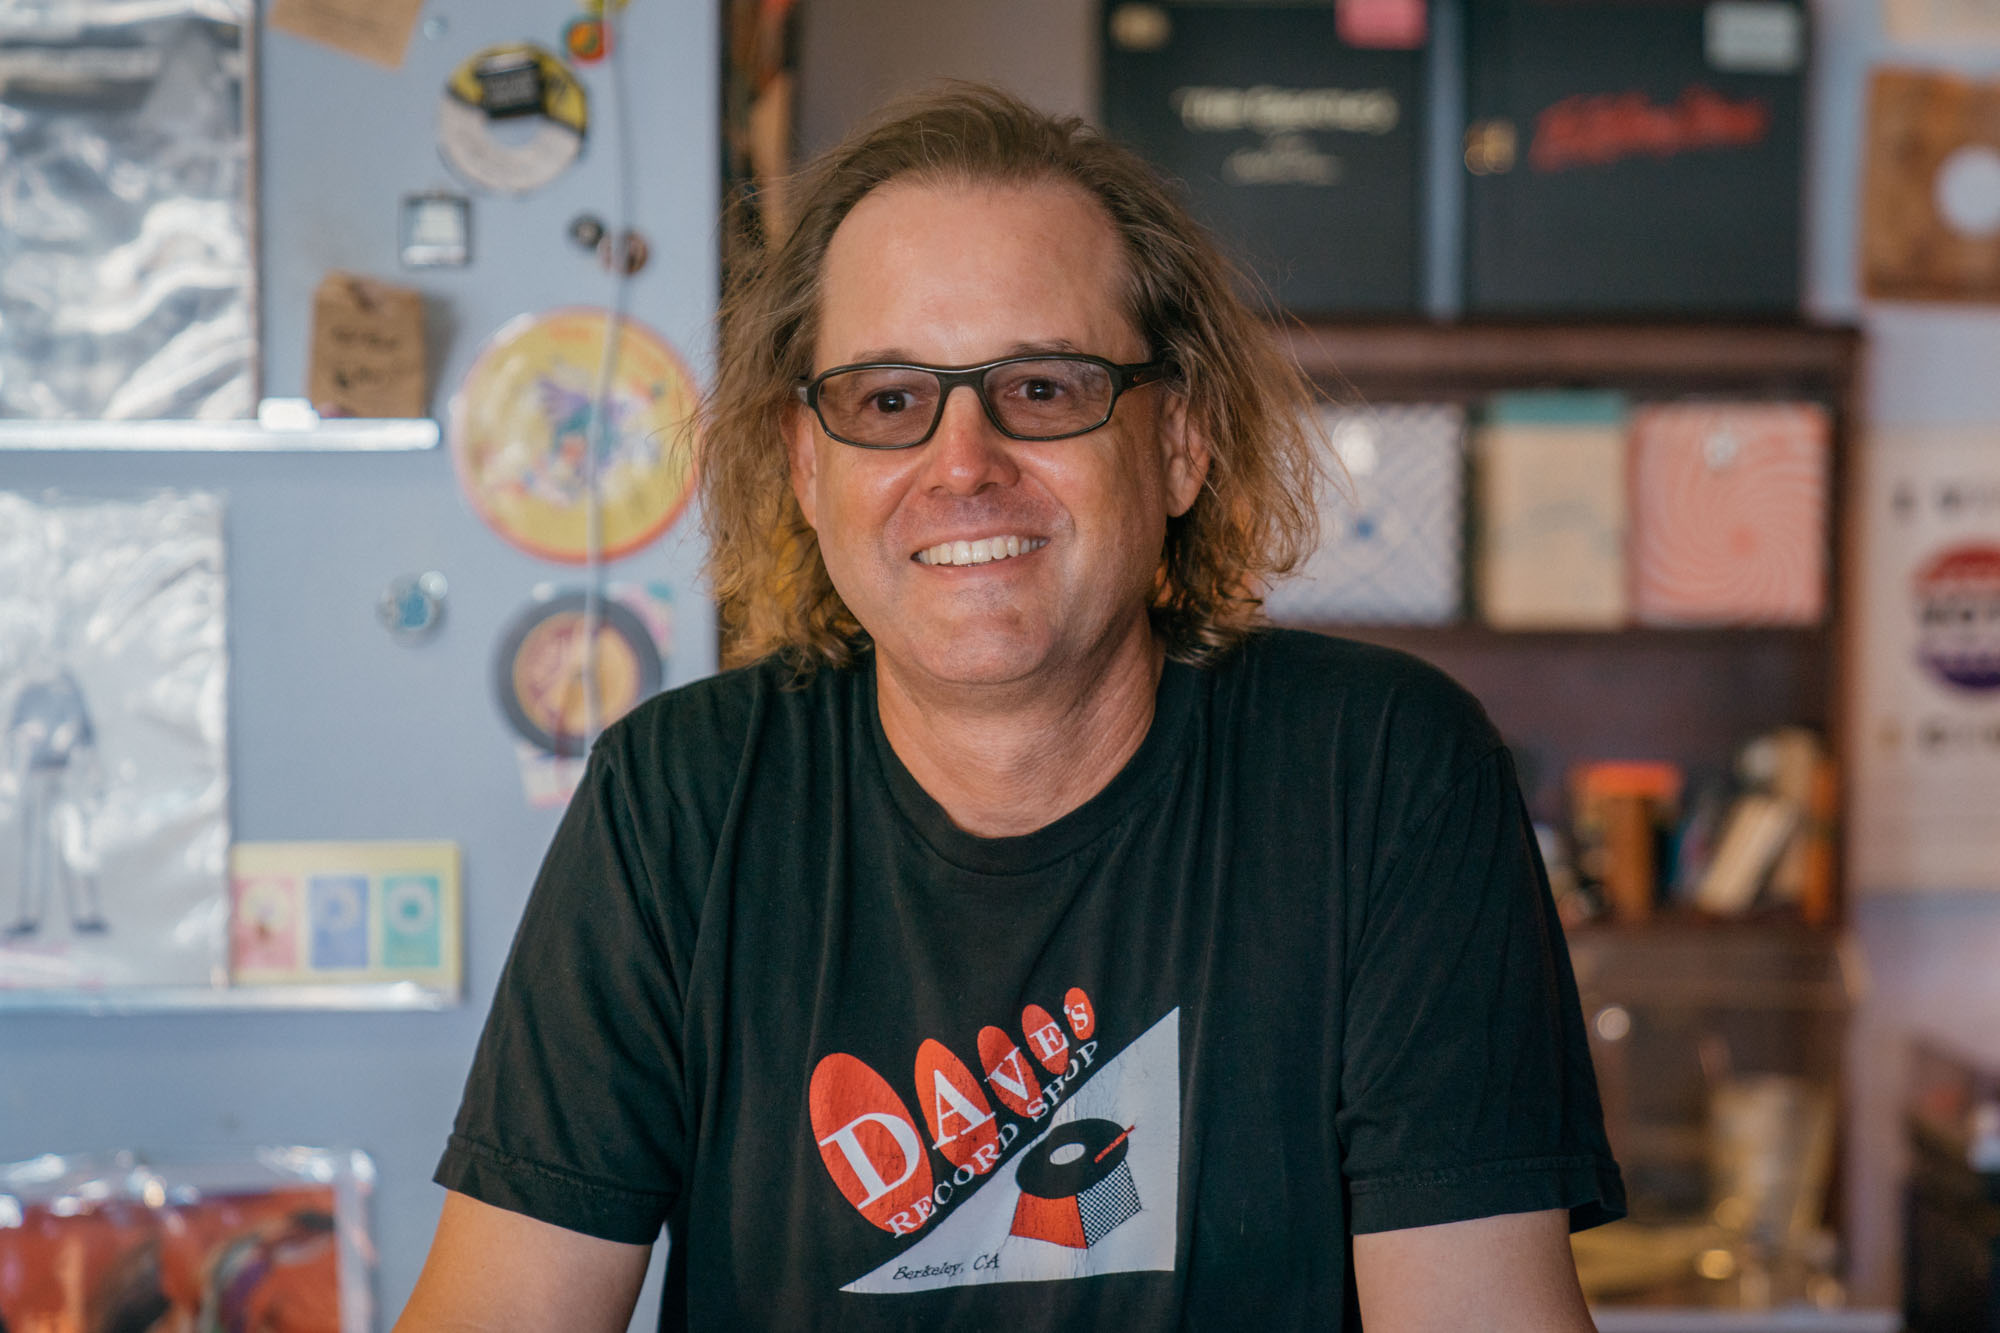 Dave Kloski owner of Dave's Record Shop in Berkeley California for Dirt Road Travels Best Records Stores on the West Coast